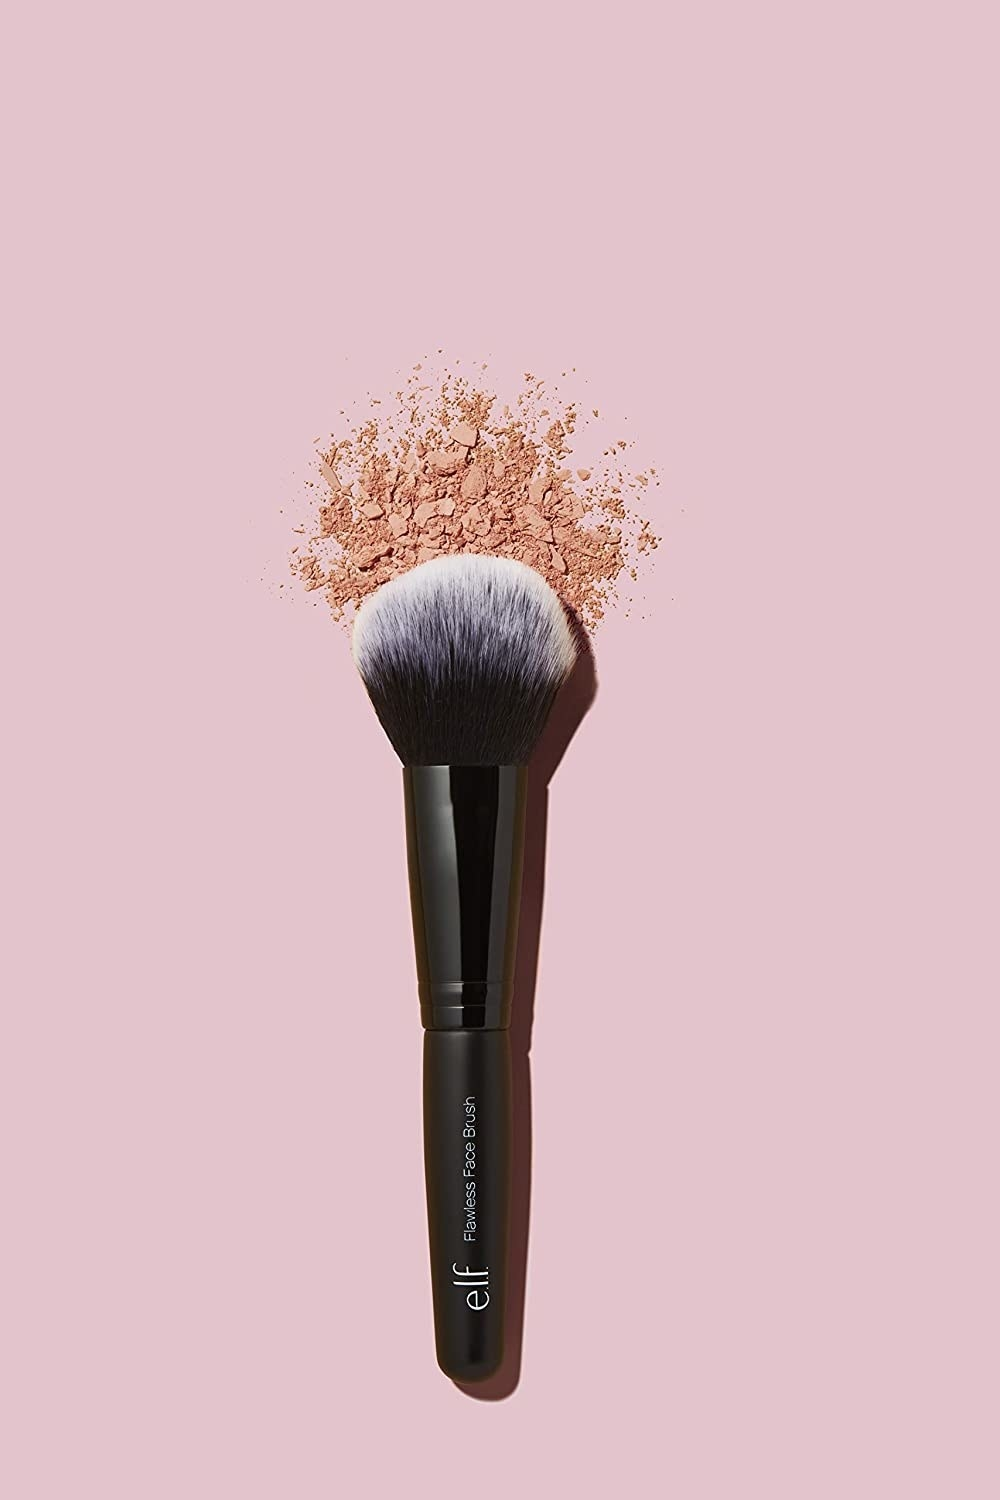 A dense fluffy makeup brush next to a swatch of loose powder